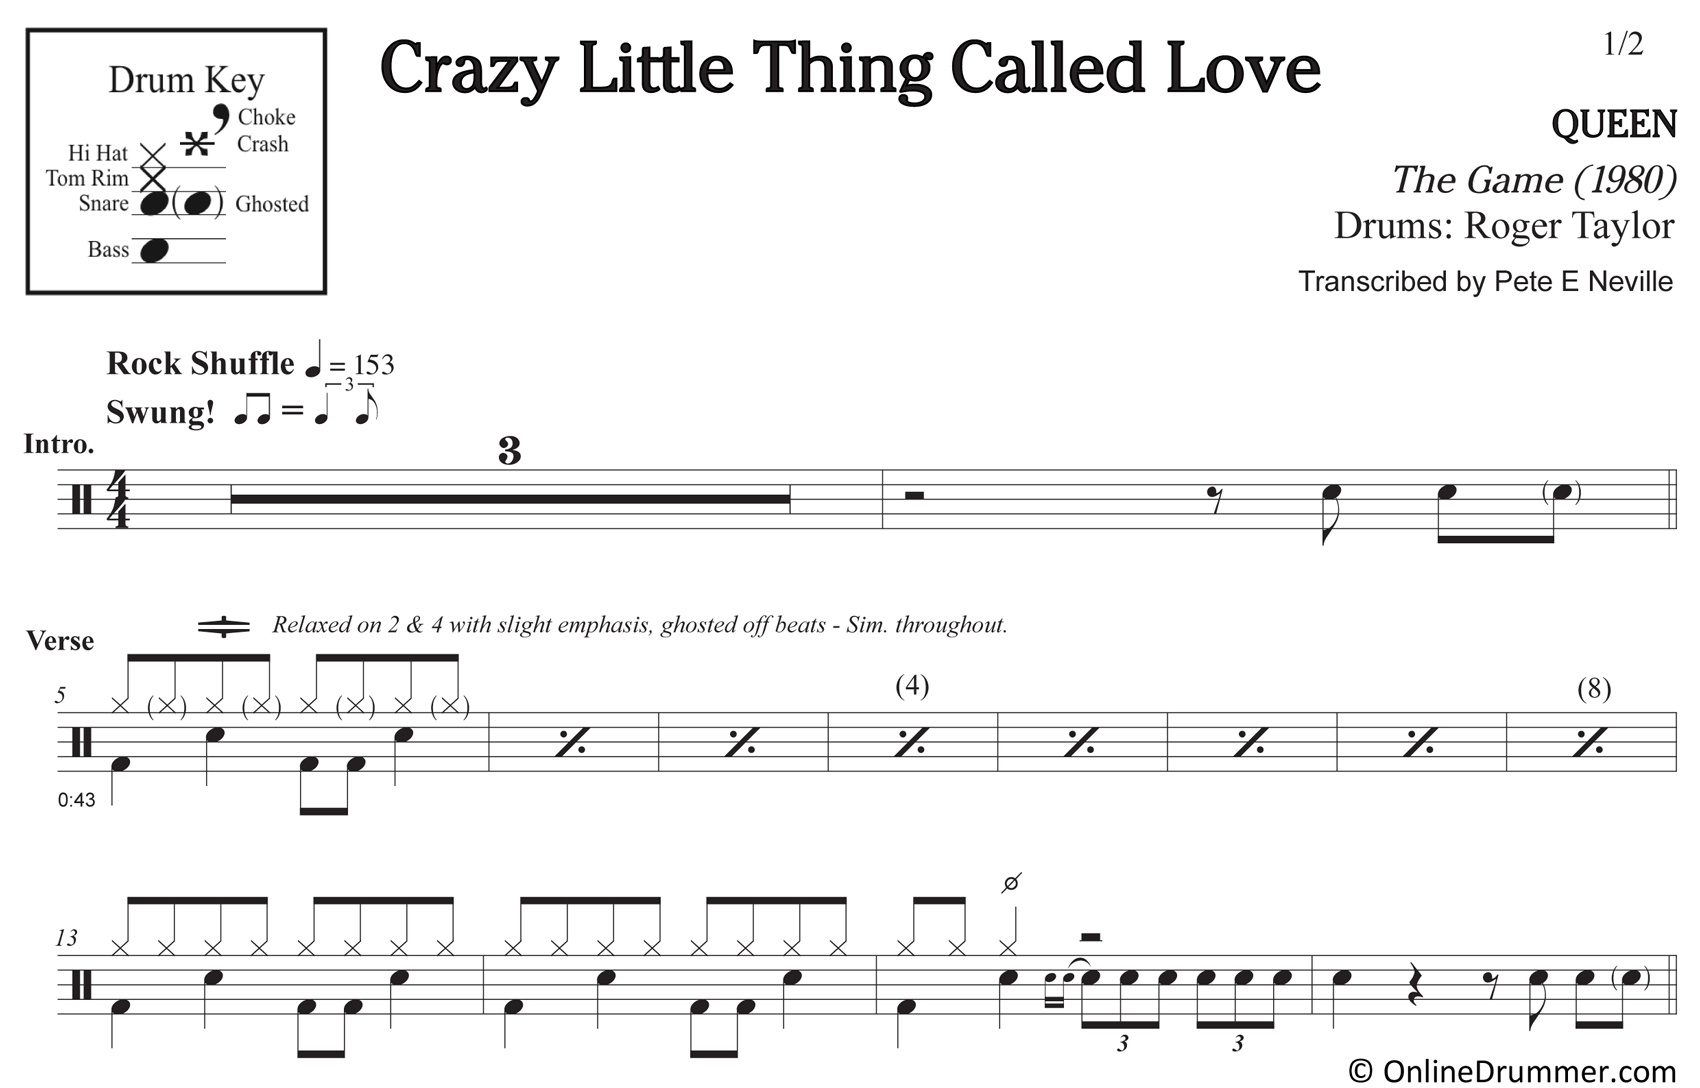 Crazy Little Thing Called Love - Queen - Drum Sheet Music